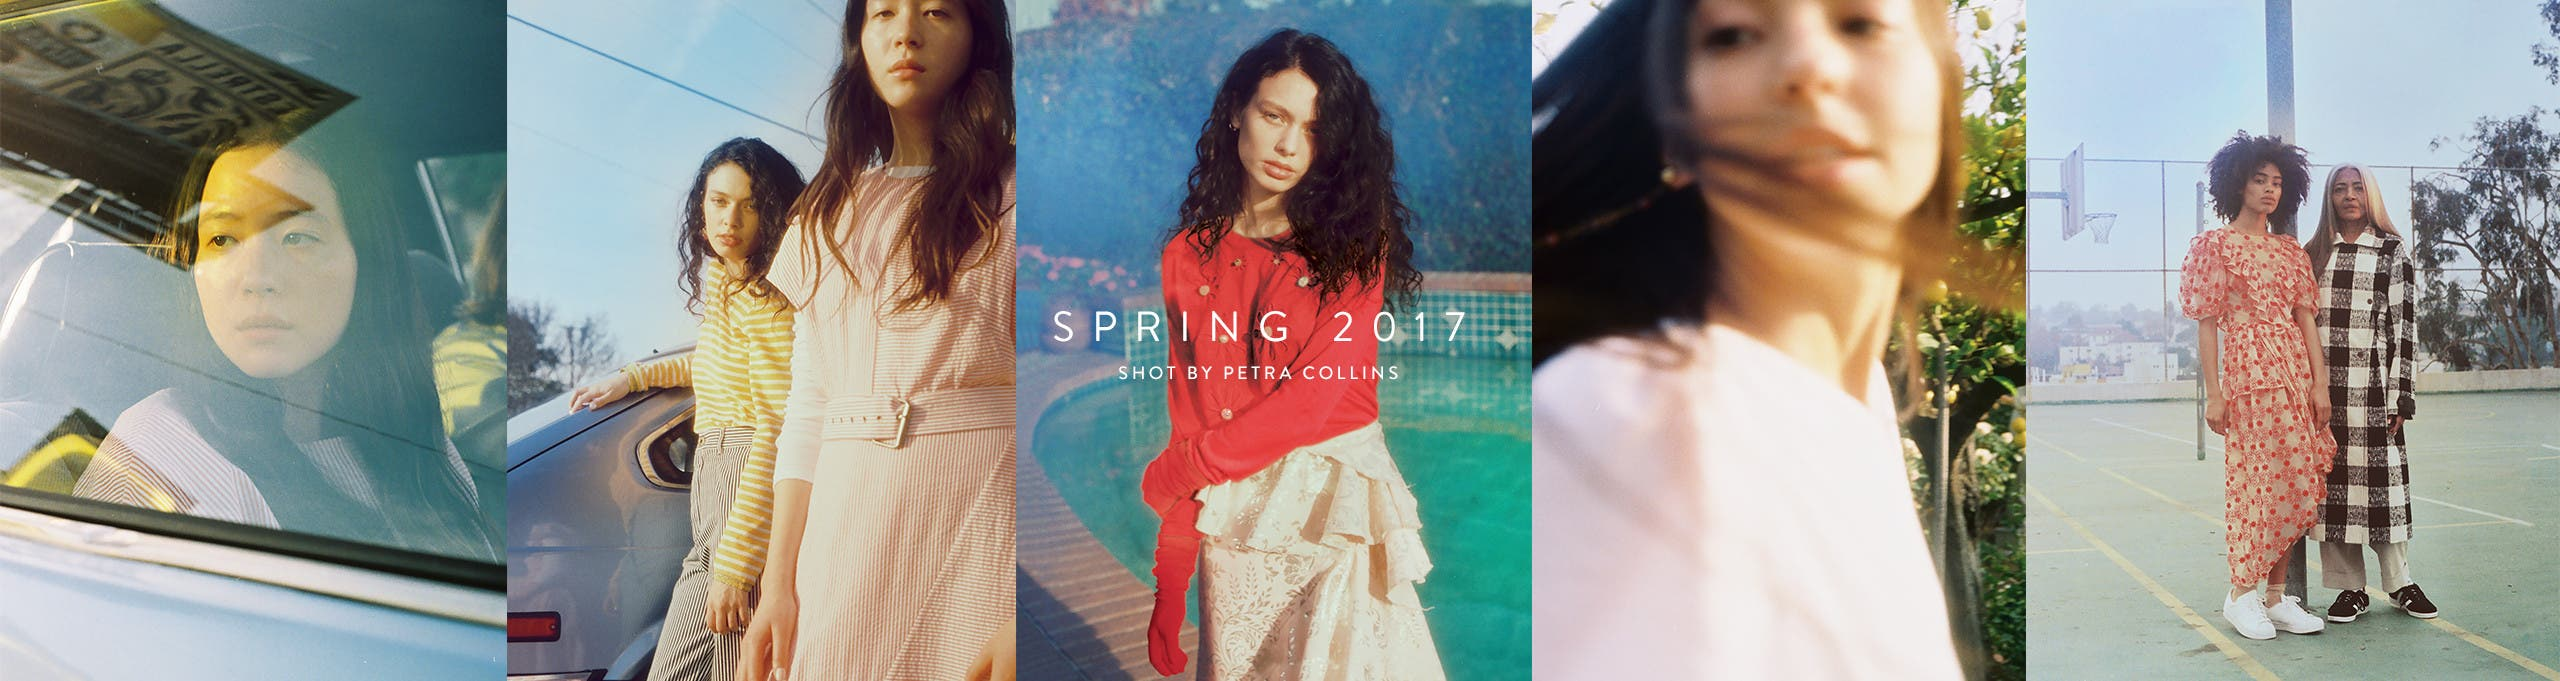 Our spring campaign, shot by Petra Collins.